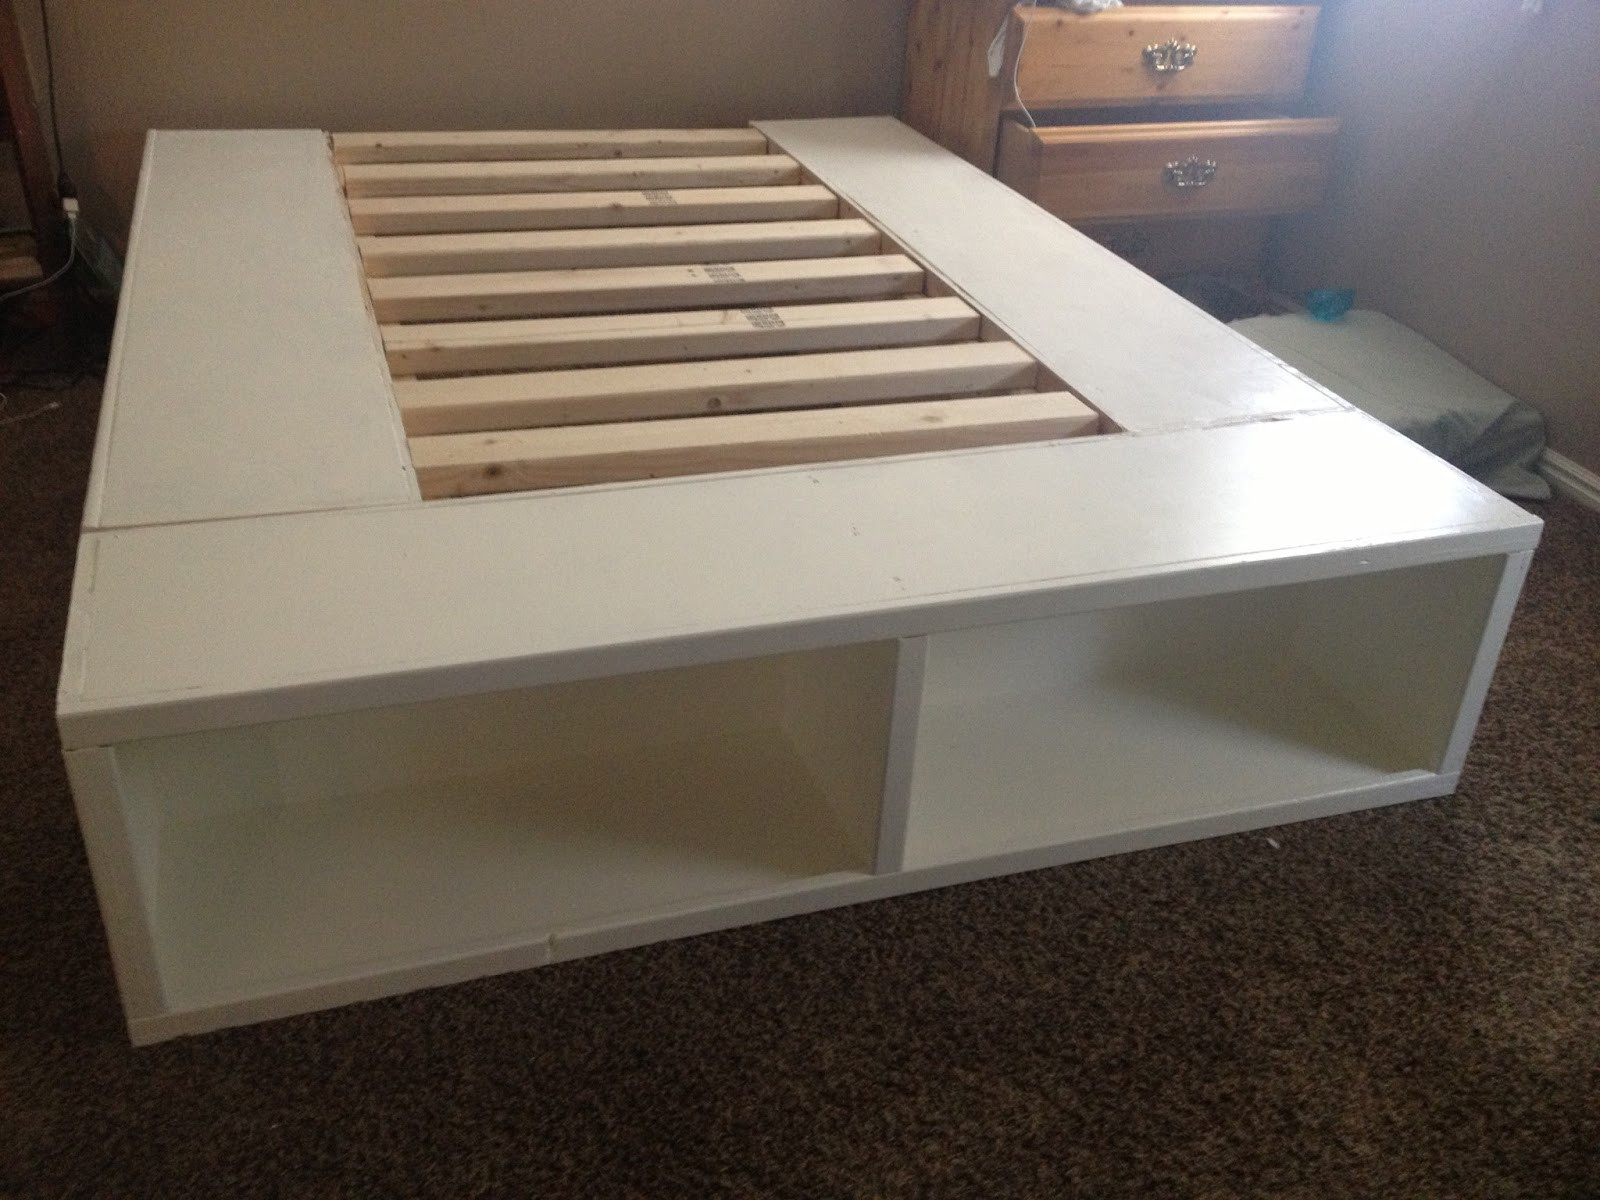 Best ideas about Storage Beds DIY . Save or Pin DIY Storage Bed Now.